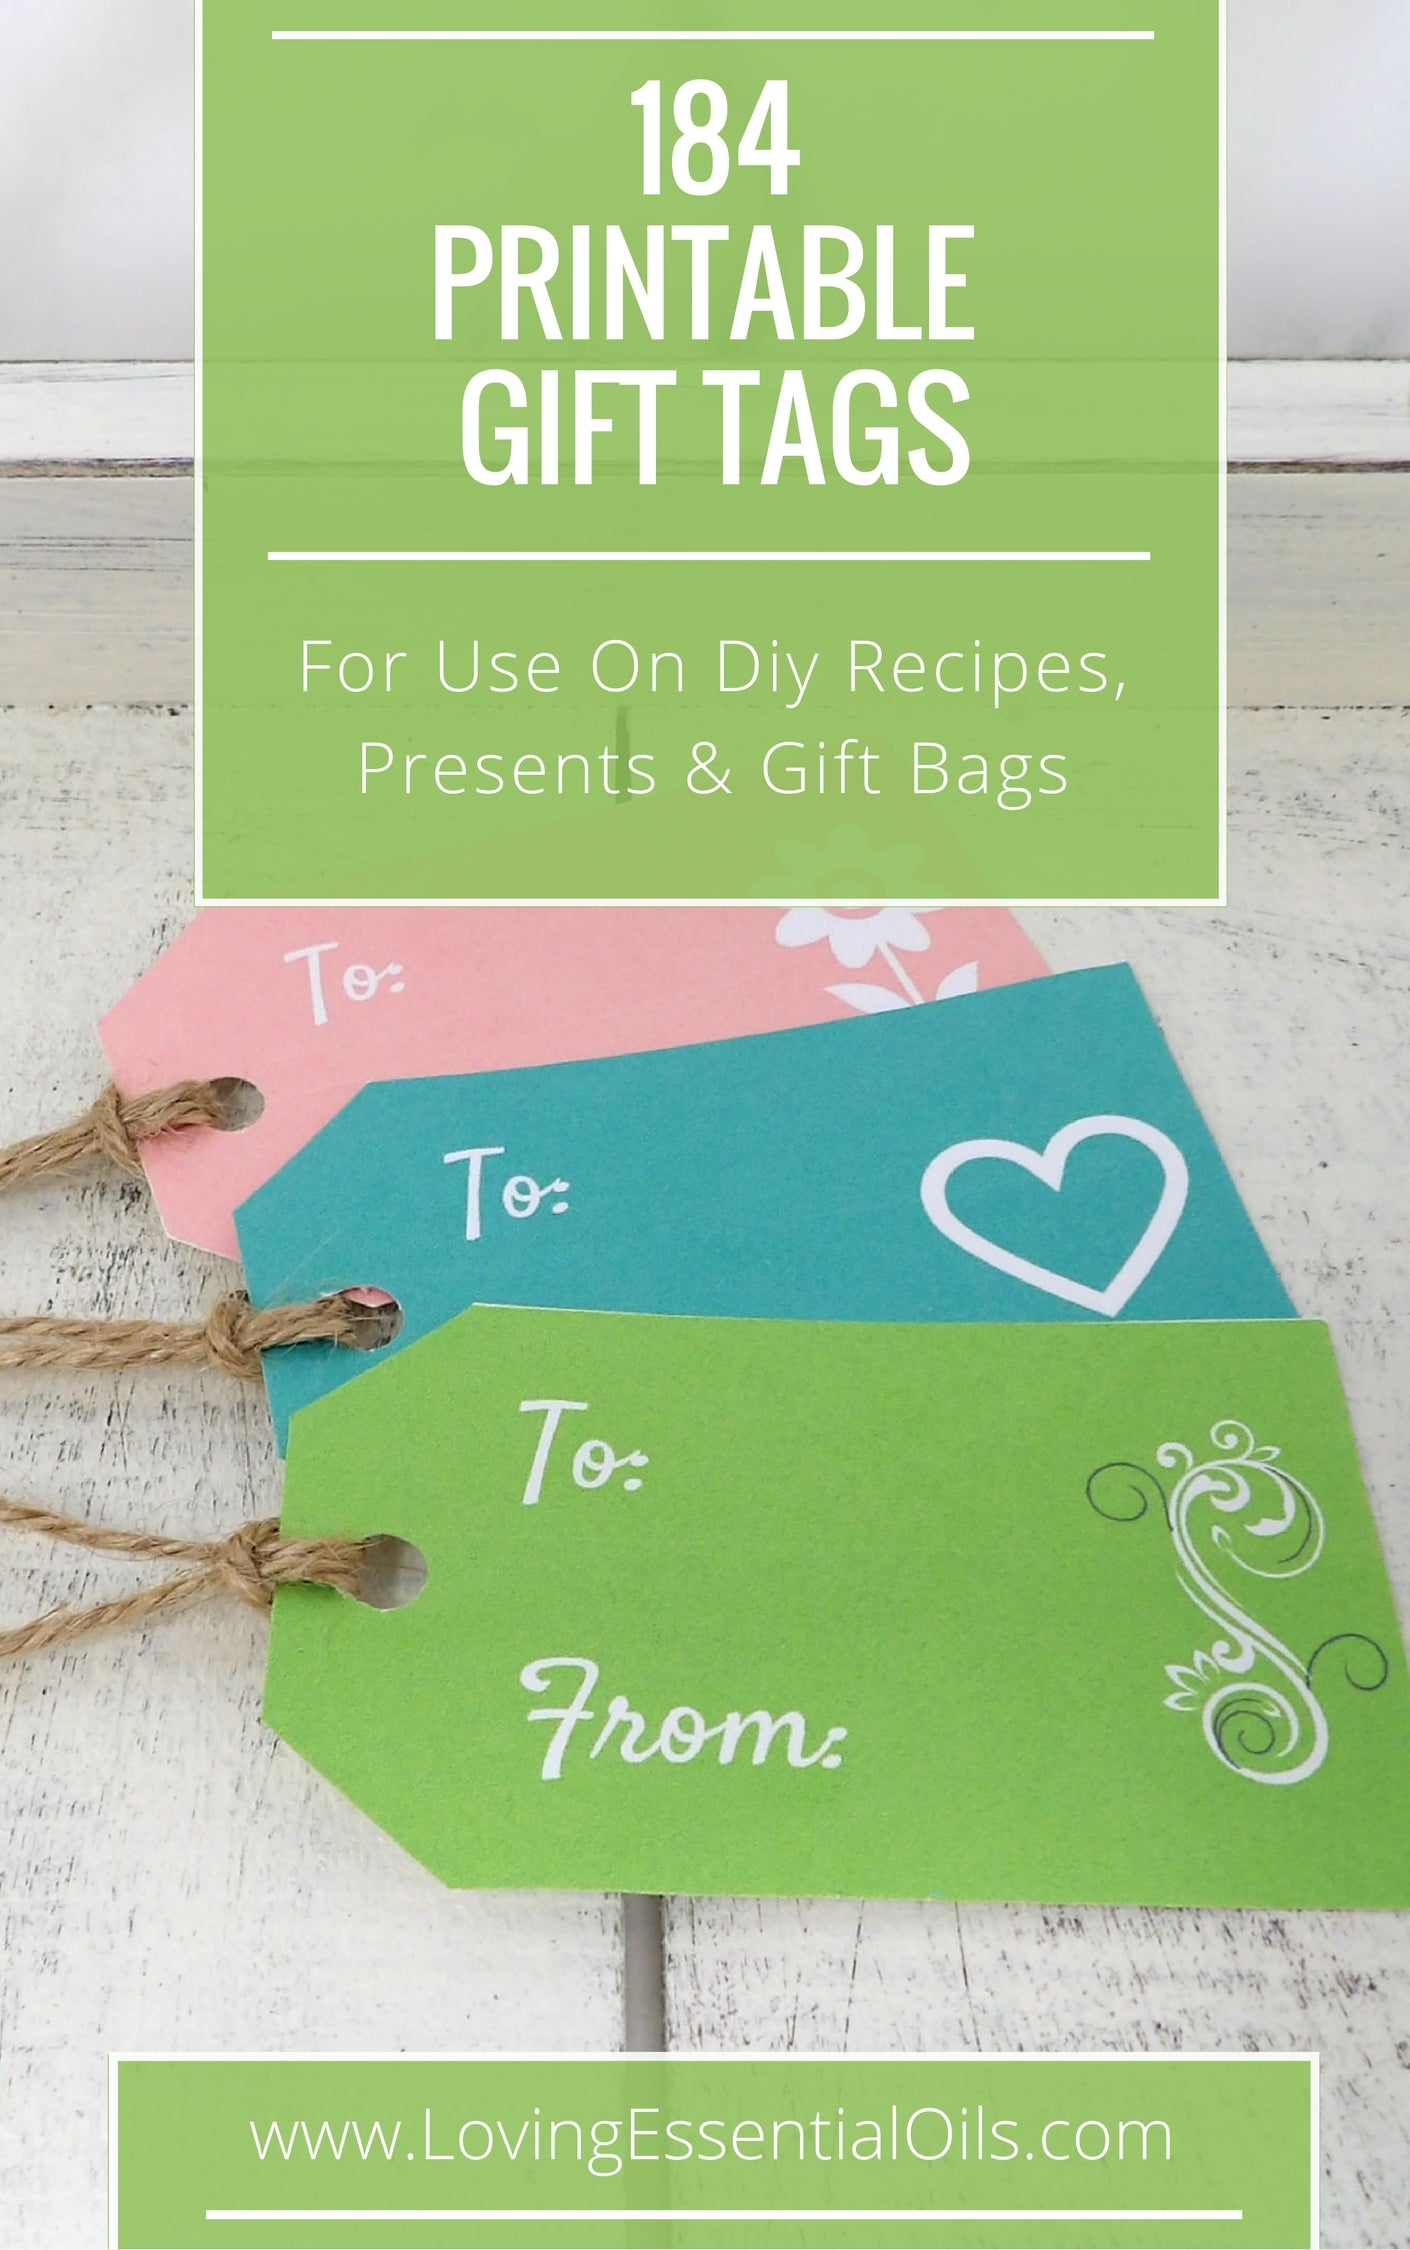 184 free printable blank gift tags for diy recipes presents free printable gift tags by loving essential oils negle Images